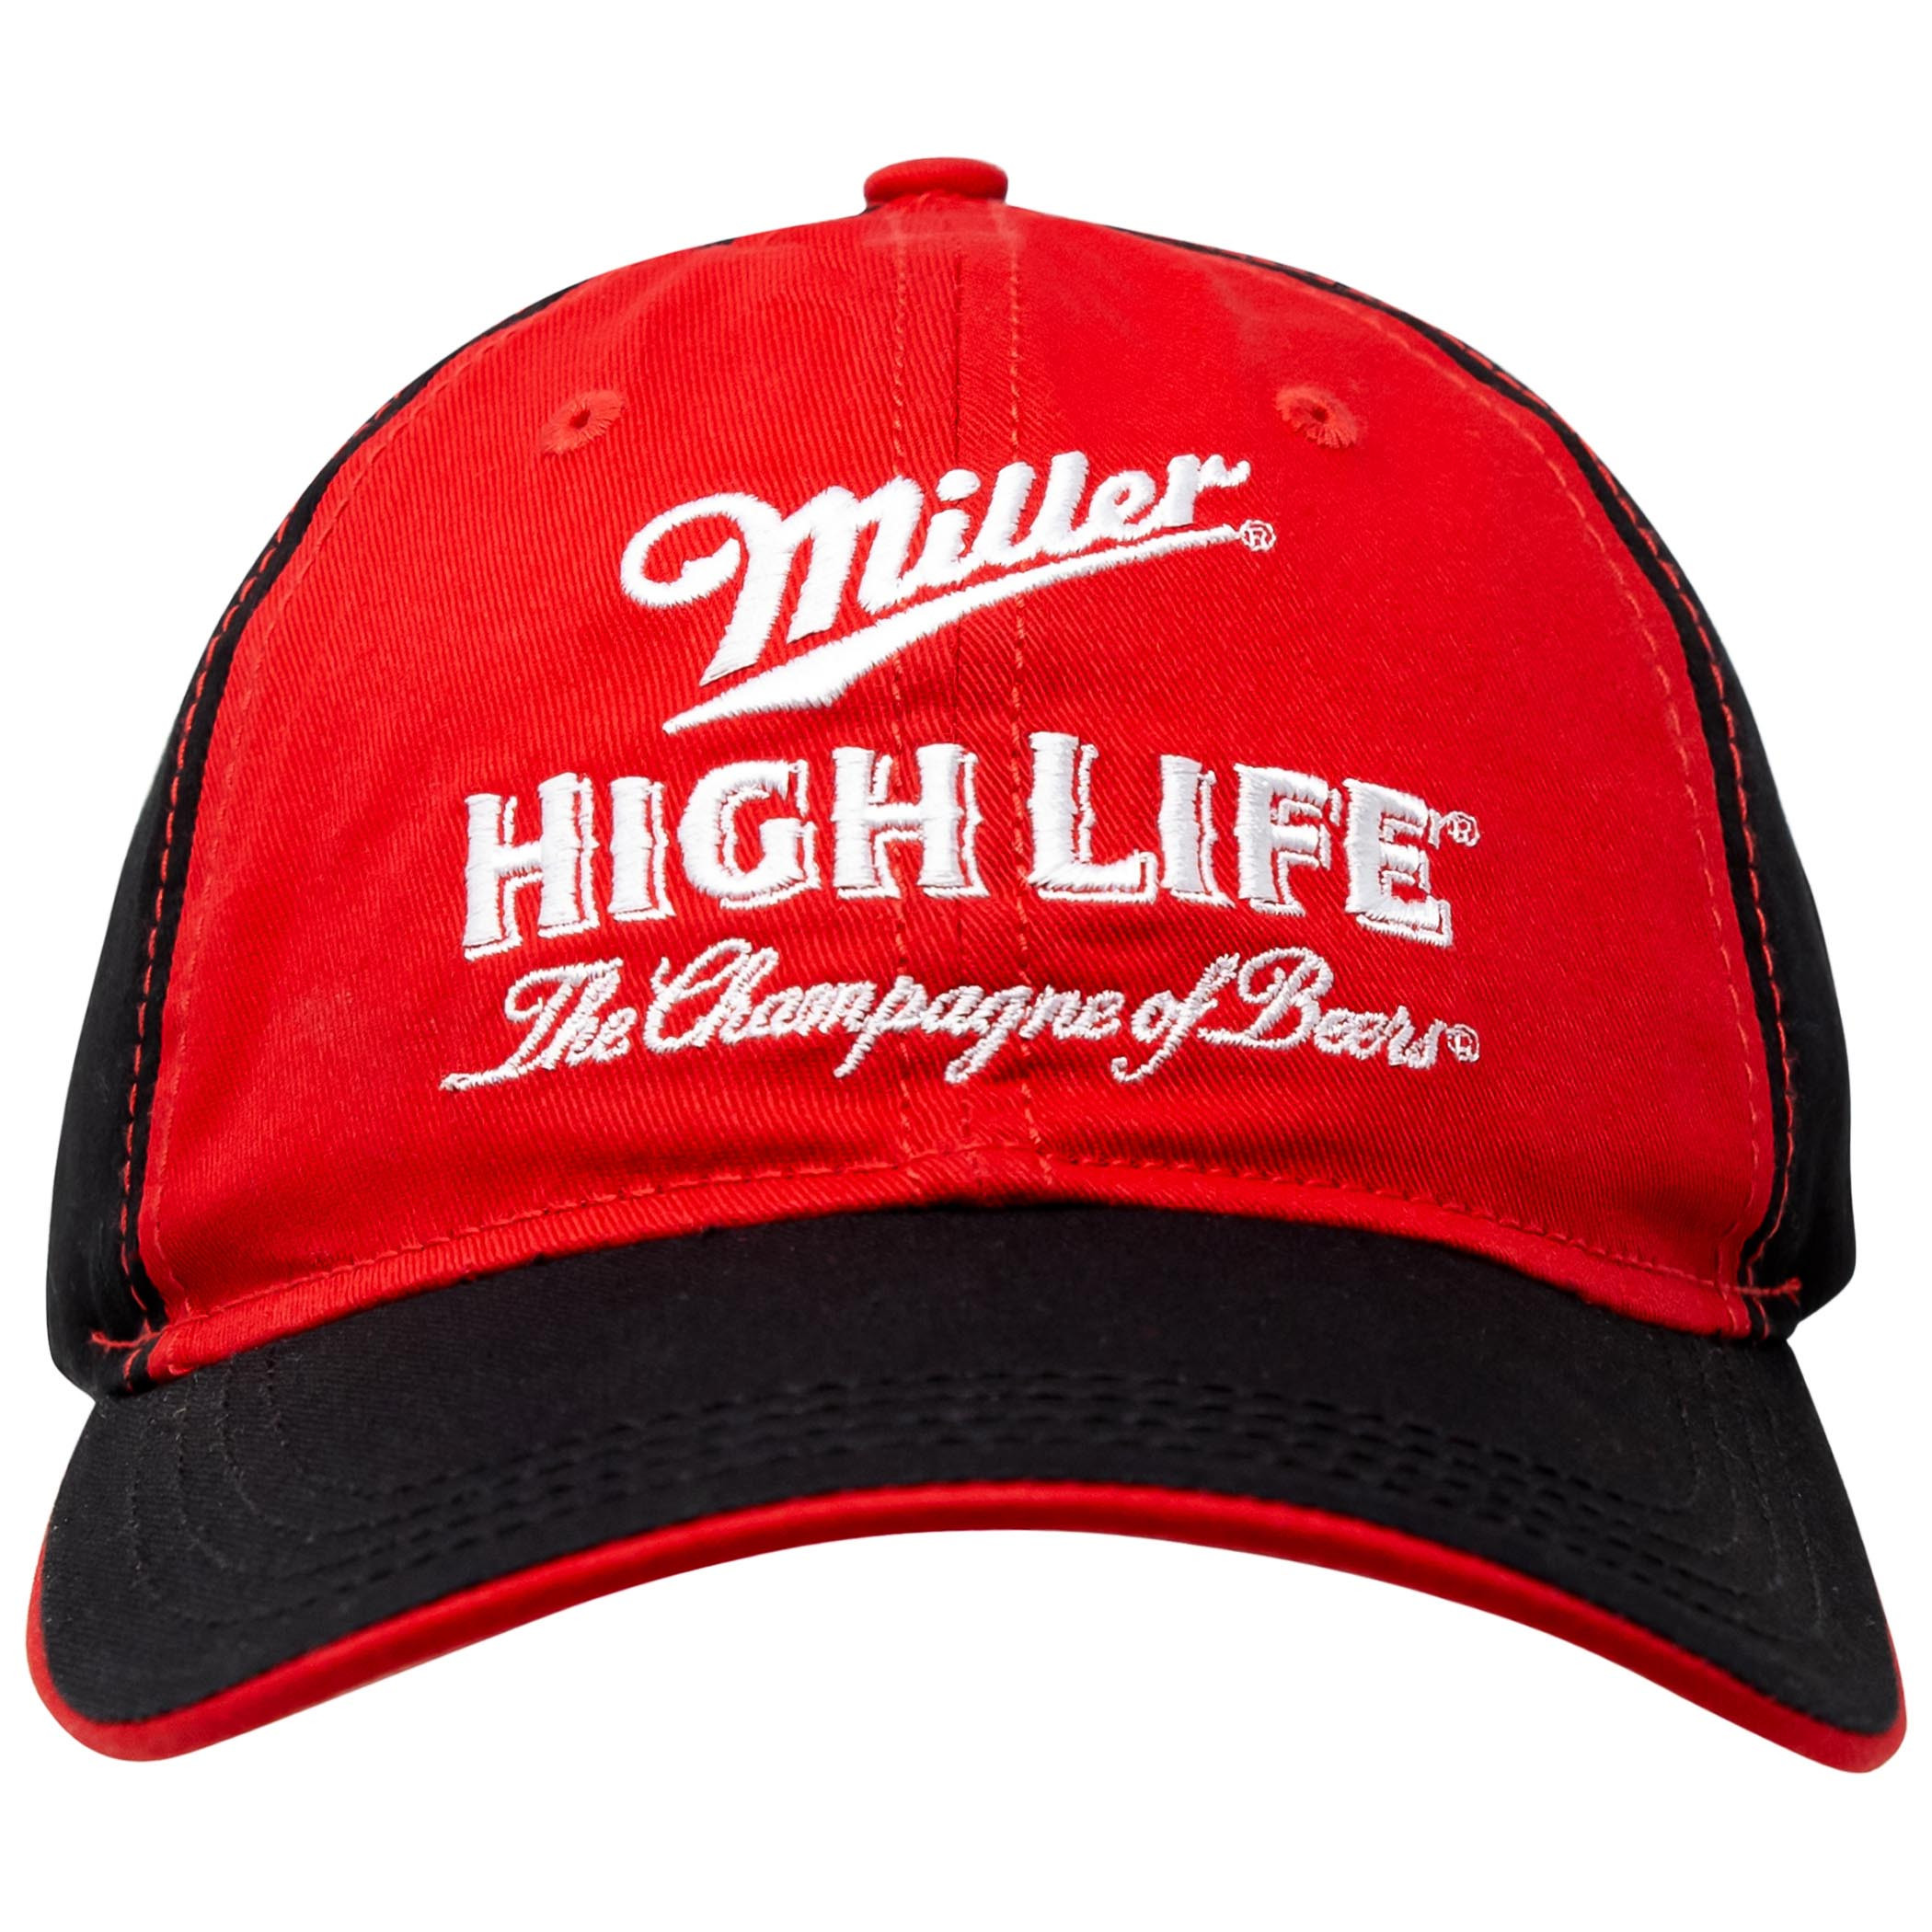 Miller High Life Beer Black And Red Adjustable Hat